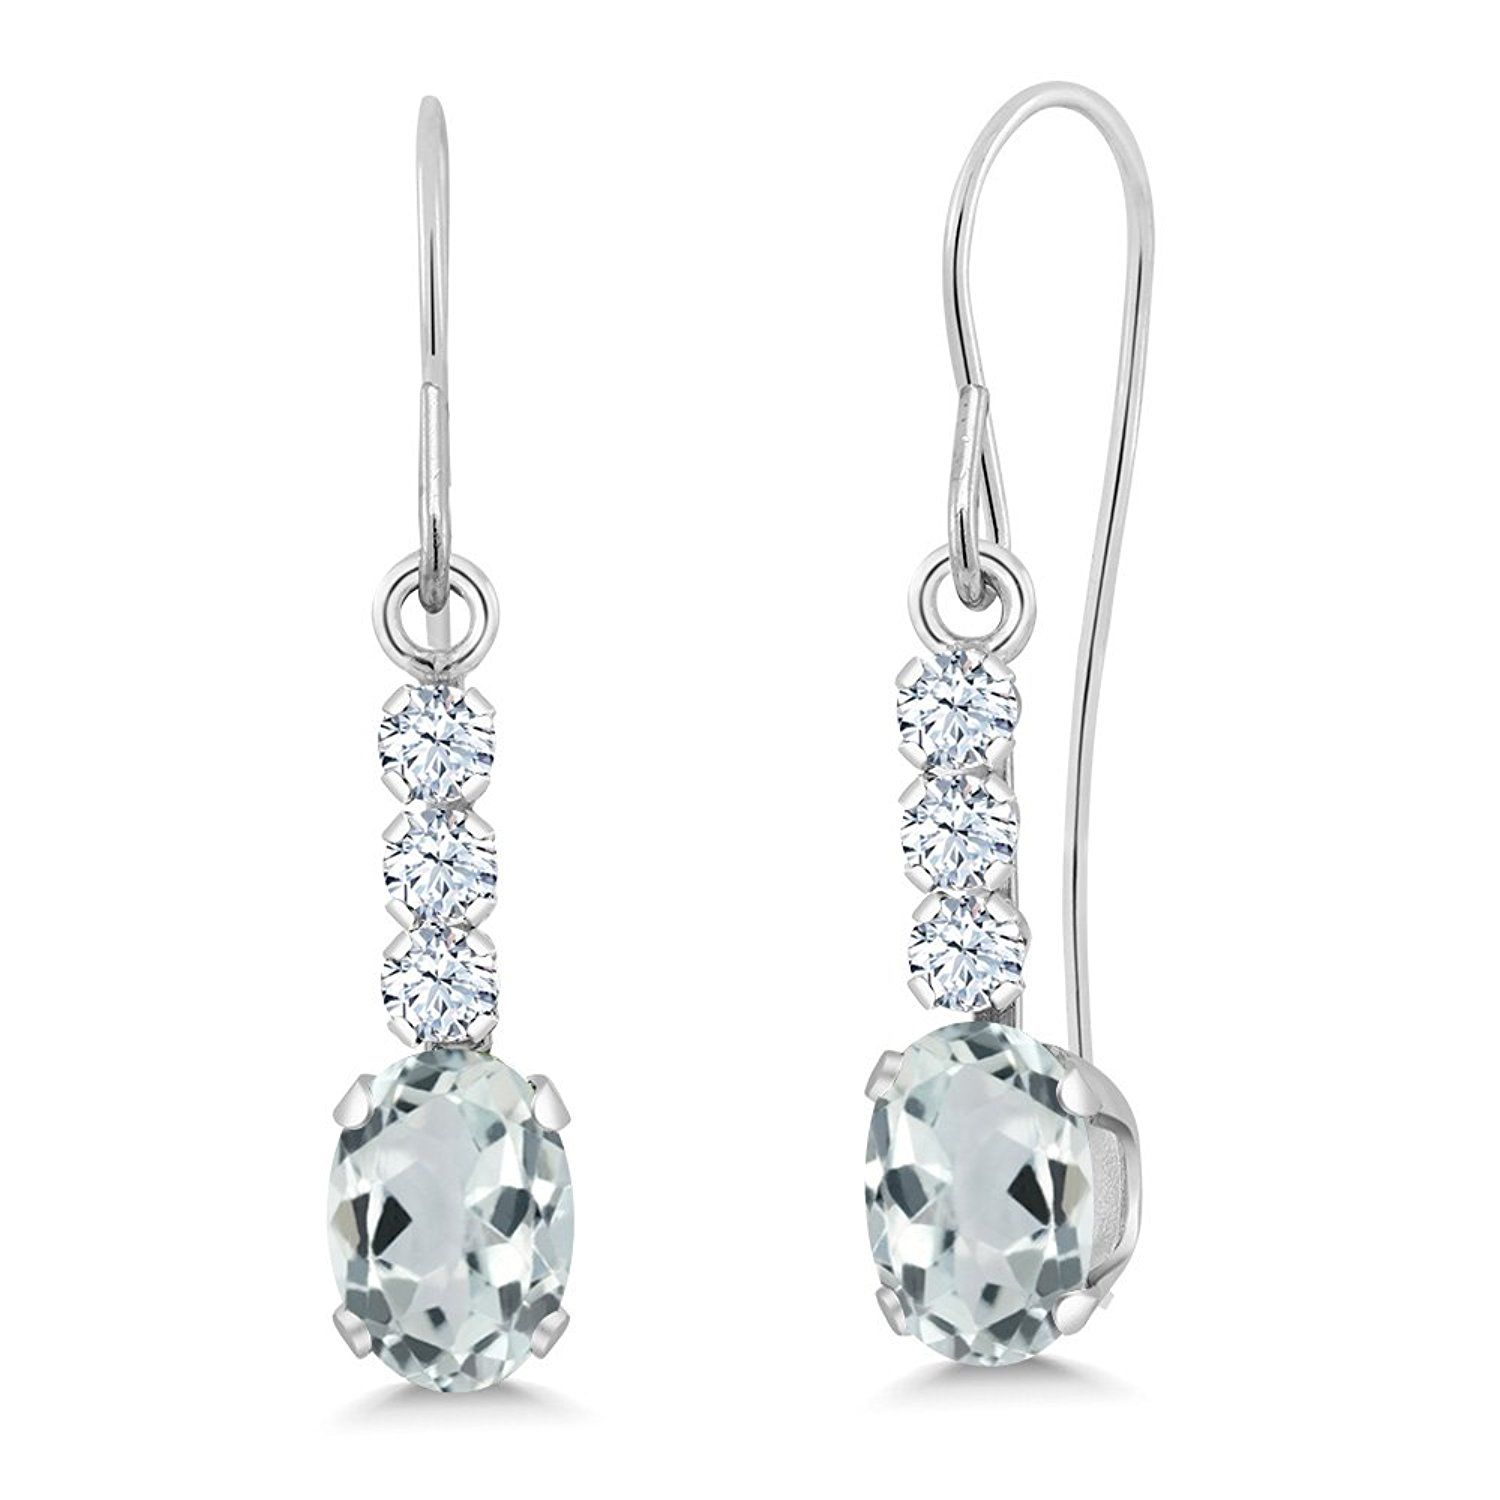 1 04 Ct Oval Sky Blue Aquamarine 10K White Gold Earrings You can